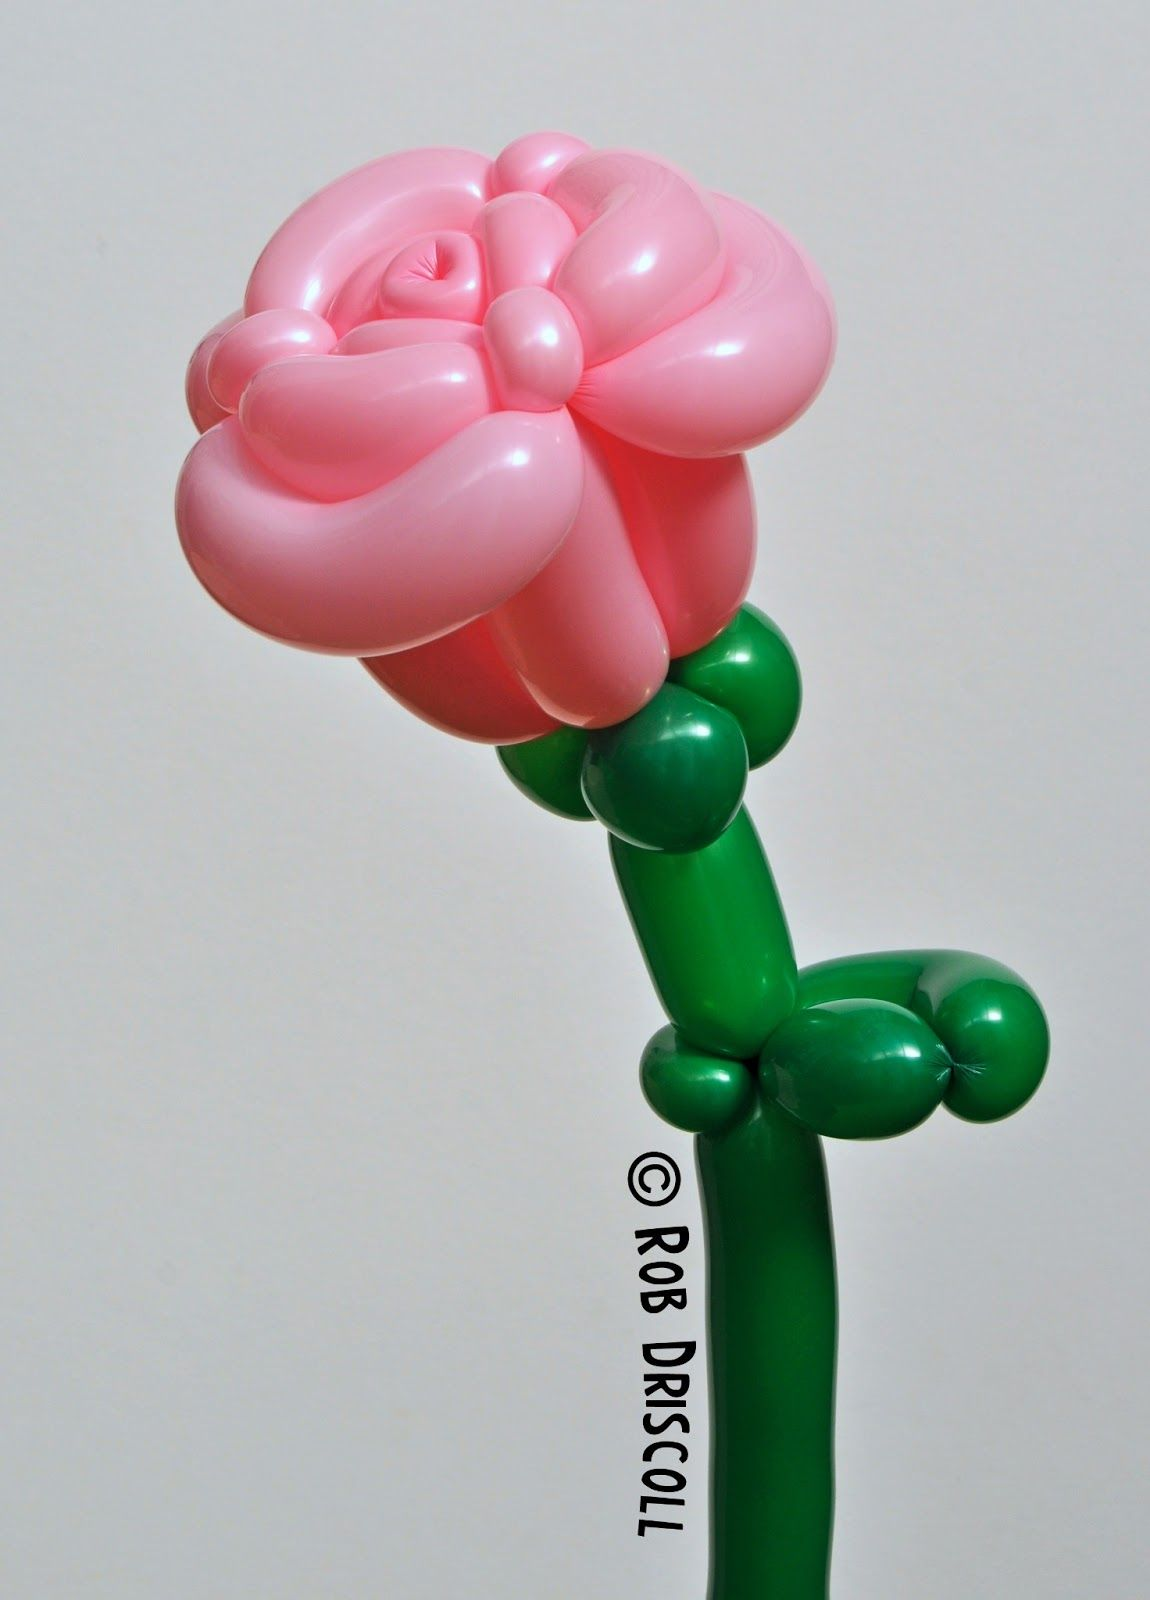 My Daily Balloon: 6th July - The Altea Rose